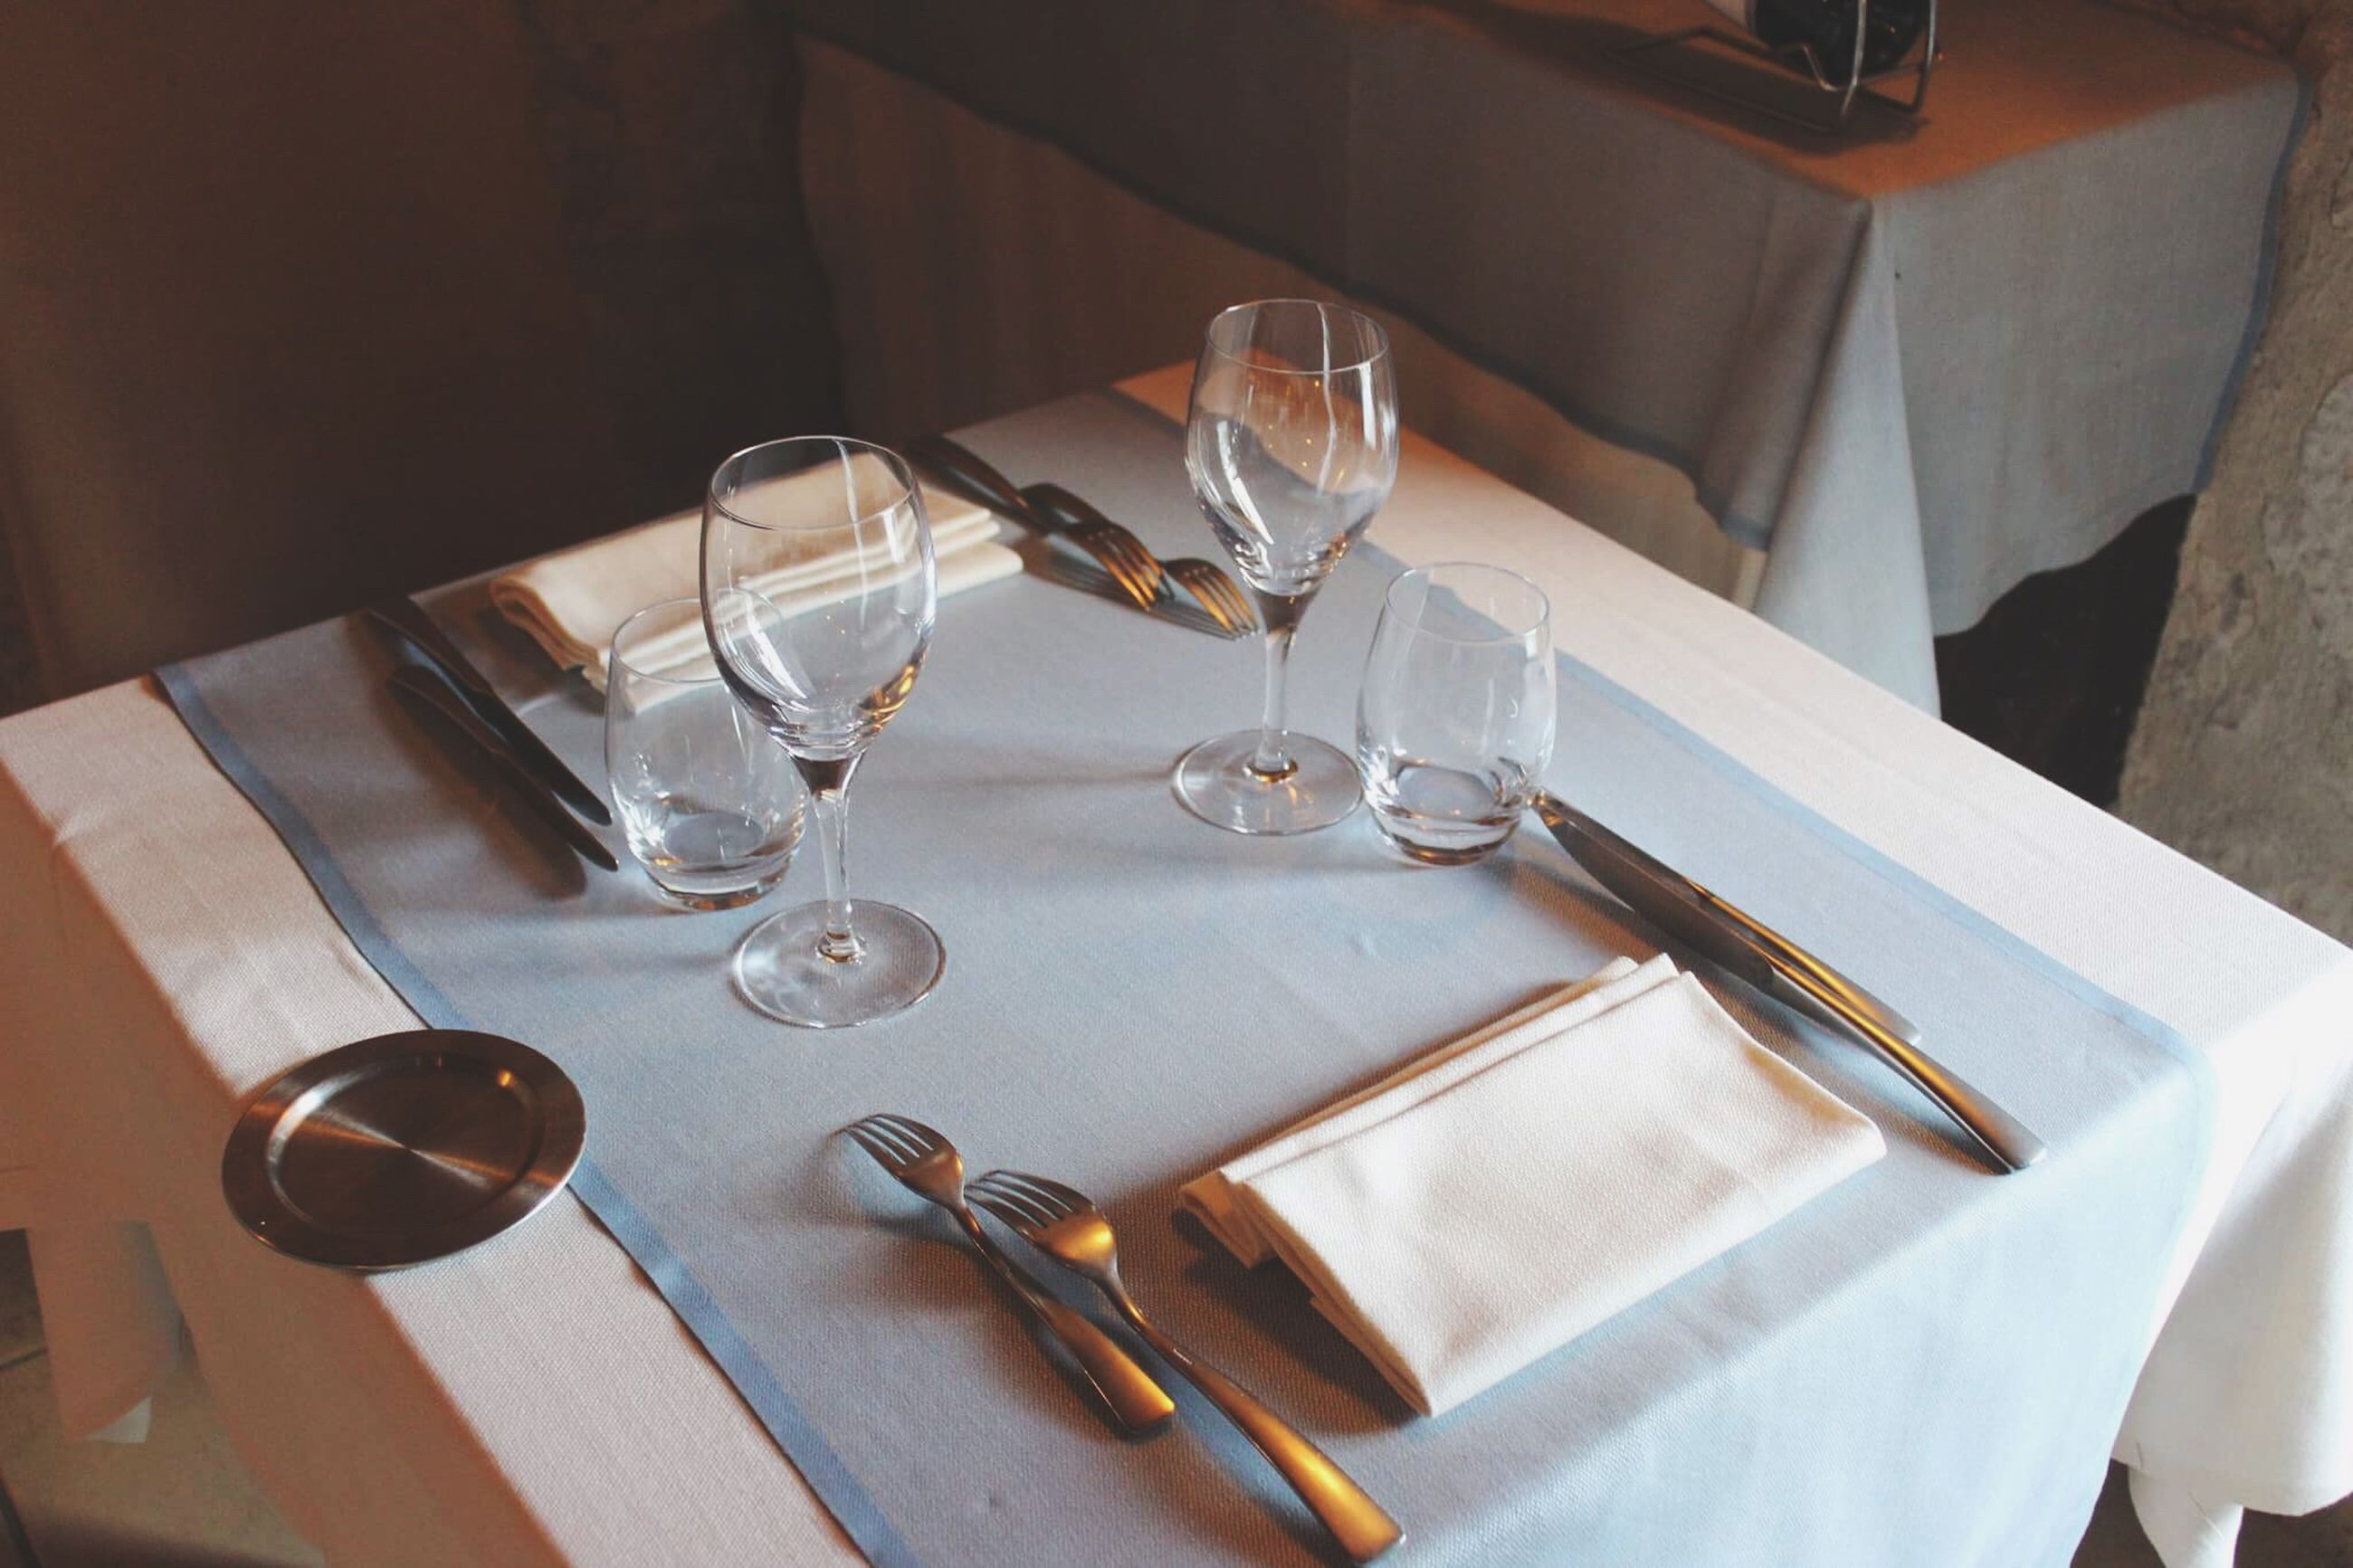 wineglass, table, drinking glass, napkin, place setting, restaurant, plate, table knife, high angle view, empty, wine, fork, food and drink, no people, cutlery, elegance, dining table, drink, tablecloth, wood - material, indoors, water, day, close-up